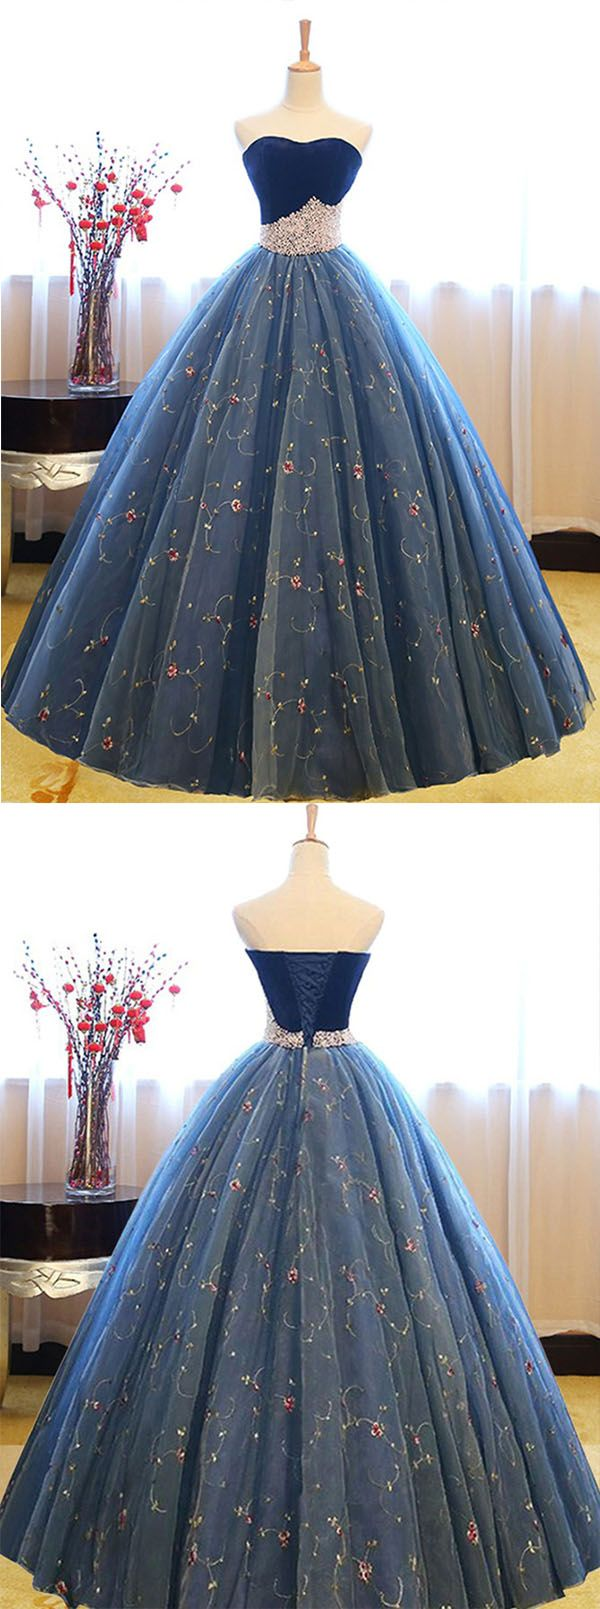 Ball Gown Sweetheart Court Train Navy Blue Lace Prom Dress with